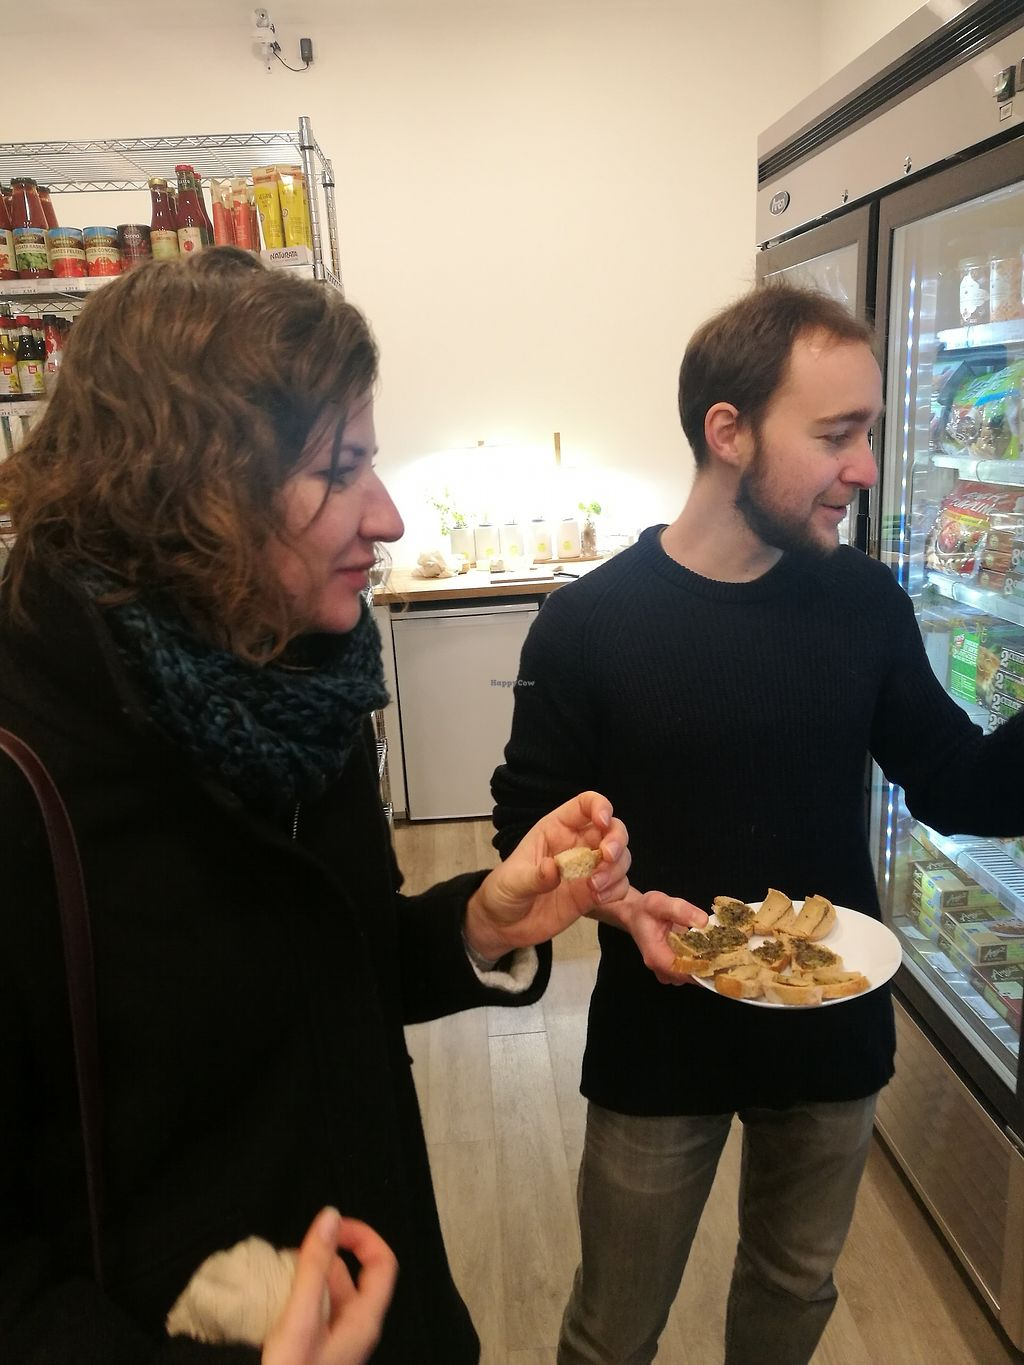 """Photo of Vegan Culinary Tours Paris  by <a href=""""/members/profile/ThomasTieyre"""">ThomasTieyre</a> <br/>Tasting in a 100% vegan shop <br/> January 22, 2018  - <a href='/contact/abuse/image/109915/349702'>Report</a>"""